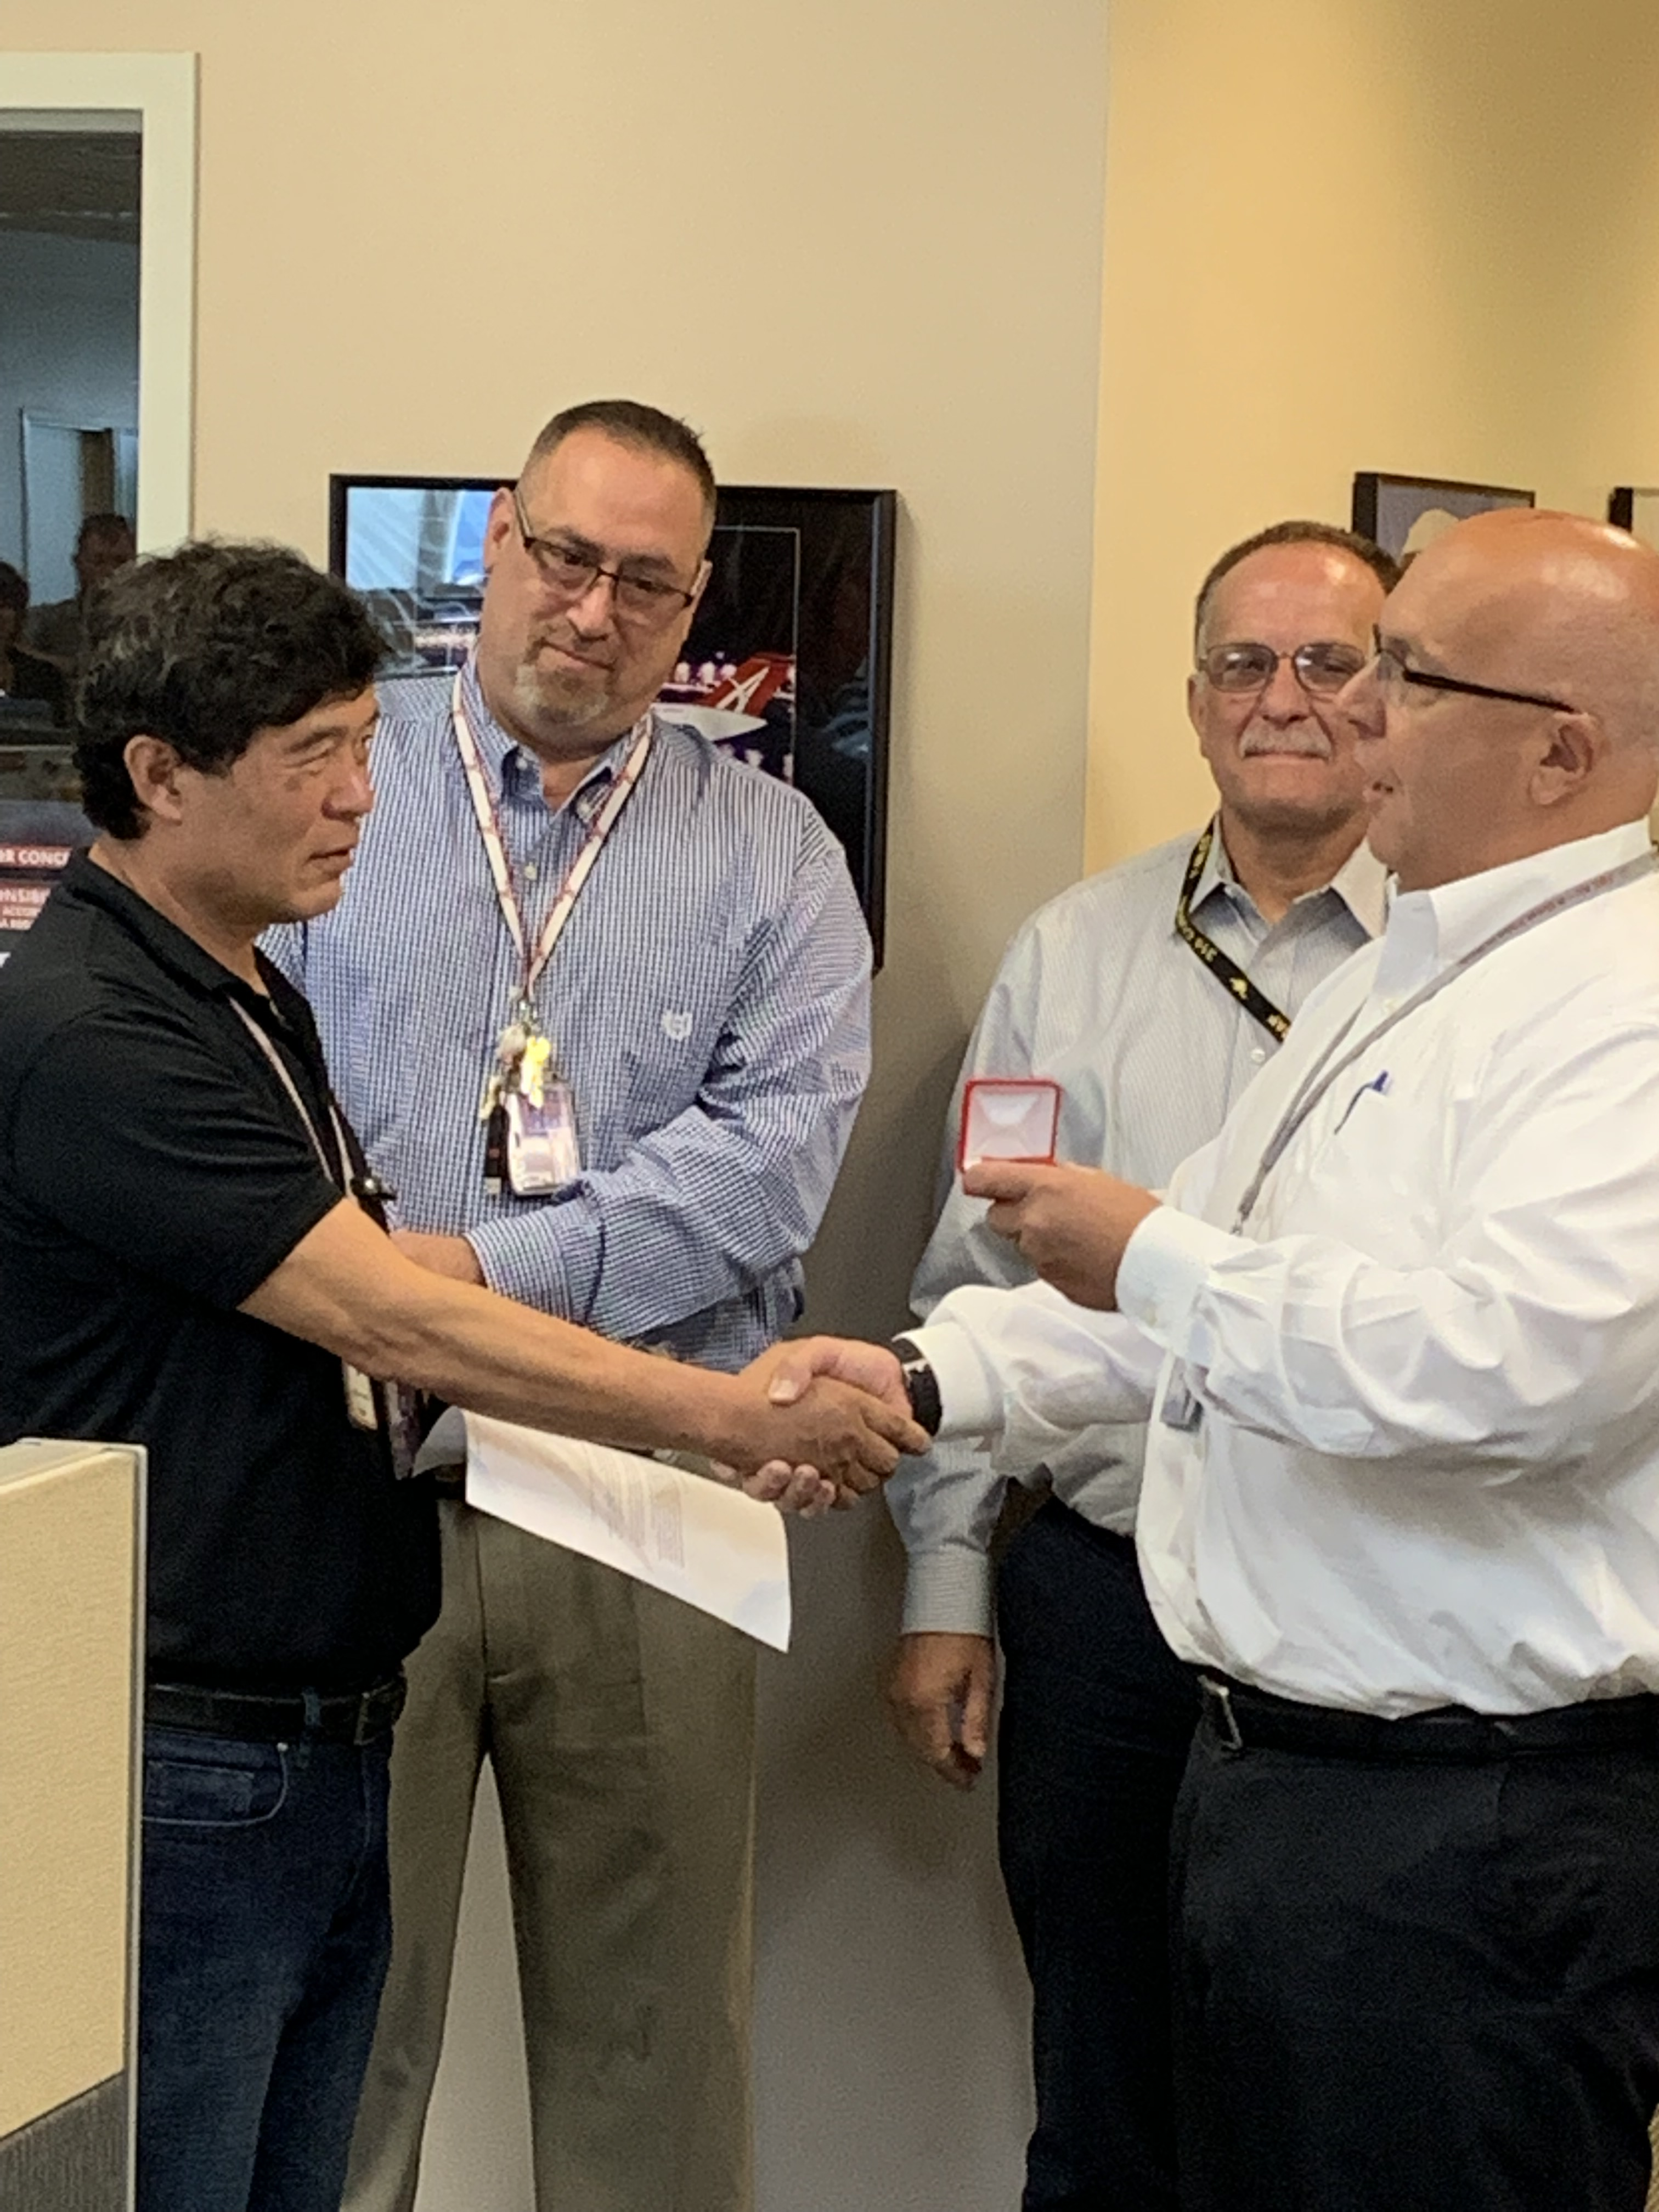 VP Aircraft Maintenance Phil Flowers congratulates Jong Park. In the back are Manager of Line Maintenance (CVG) Mark Stevens and Director of Line Maintenance Brad Hamlin.